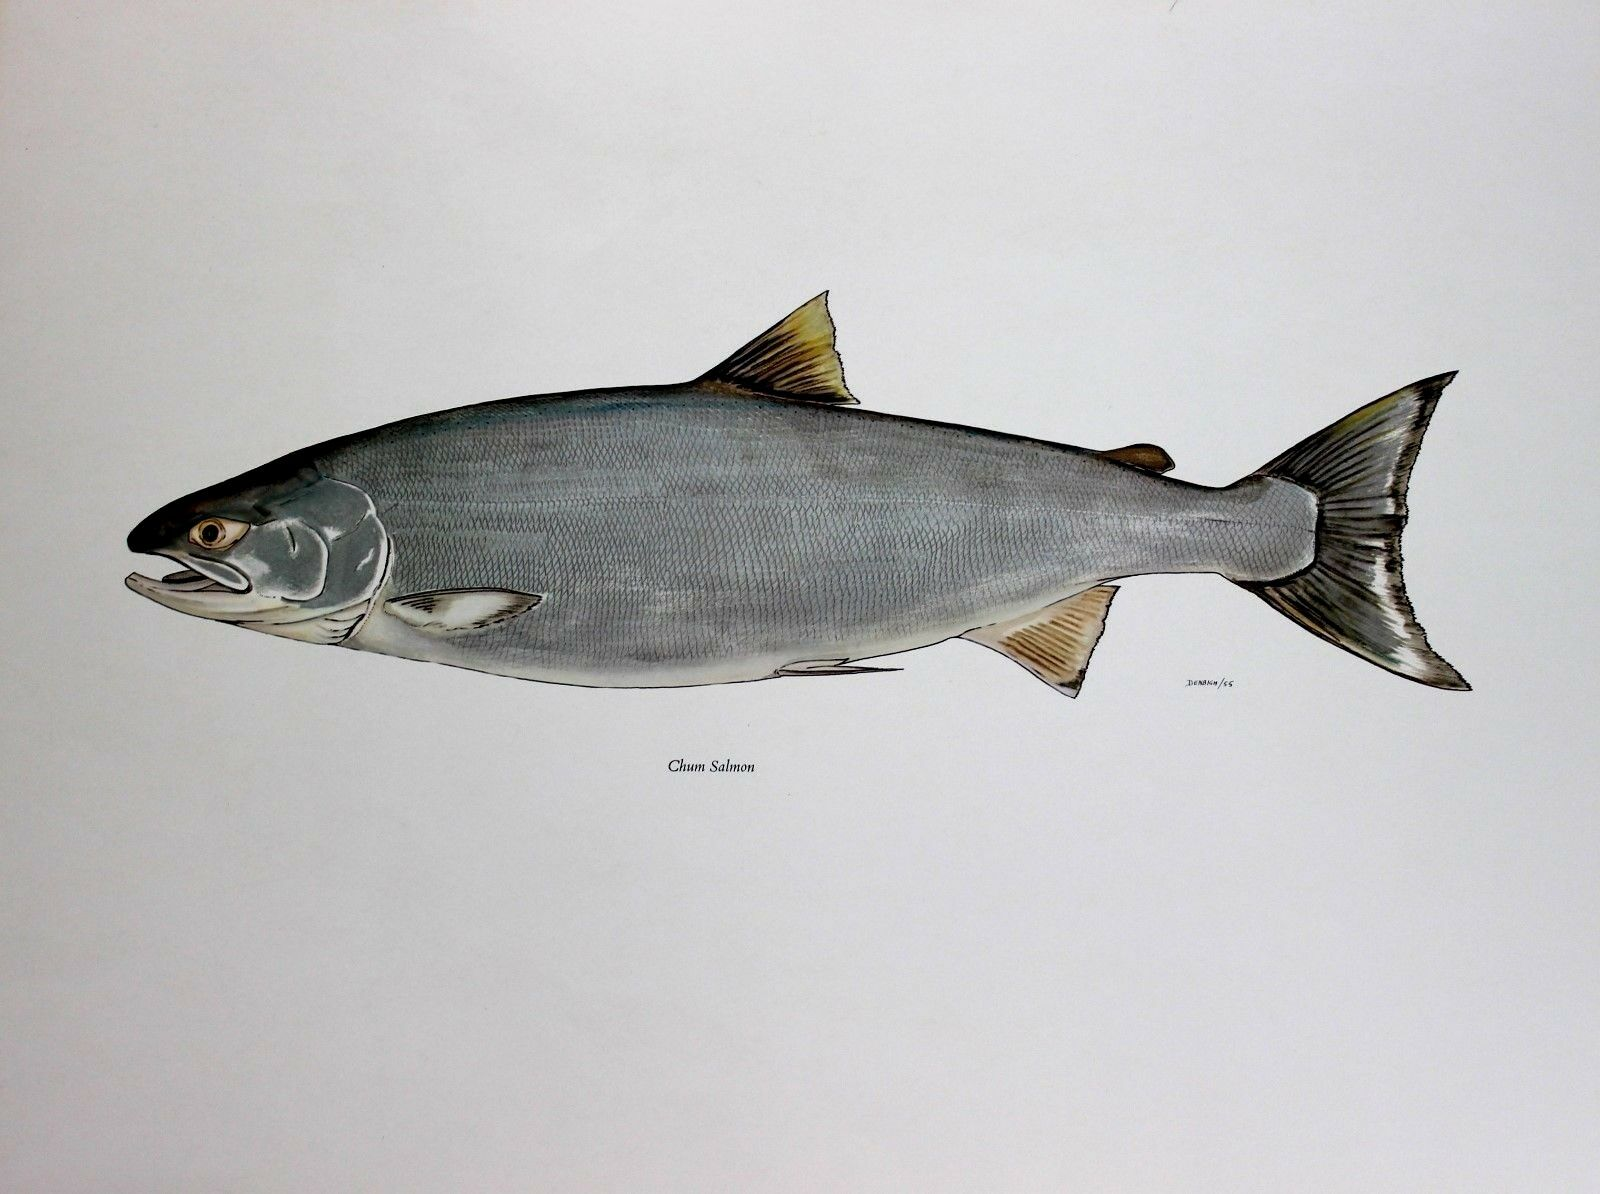 David Denbigh Lithograph Limited Edition Pacific Coast Chum Salmon 1974 Rare